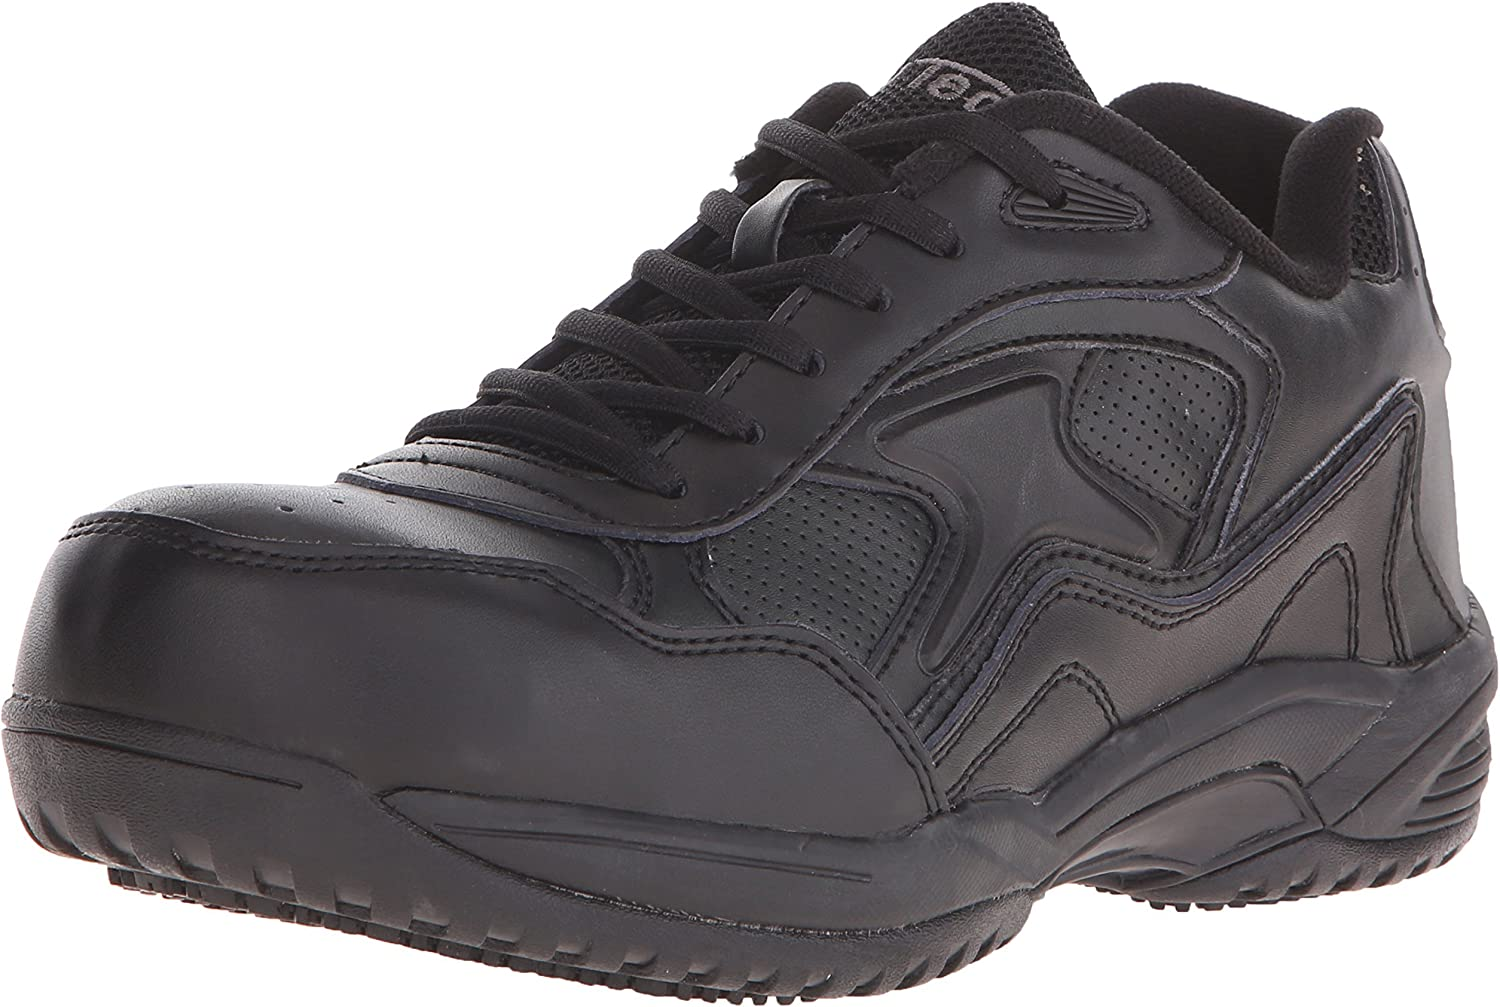 Ad Tec Women's Utility Footwear Leather Work Shoes for Women- Lace Up and Acid Proof with Non Skid Oil Resistant Outsole, Black